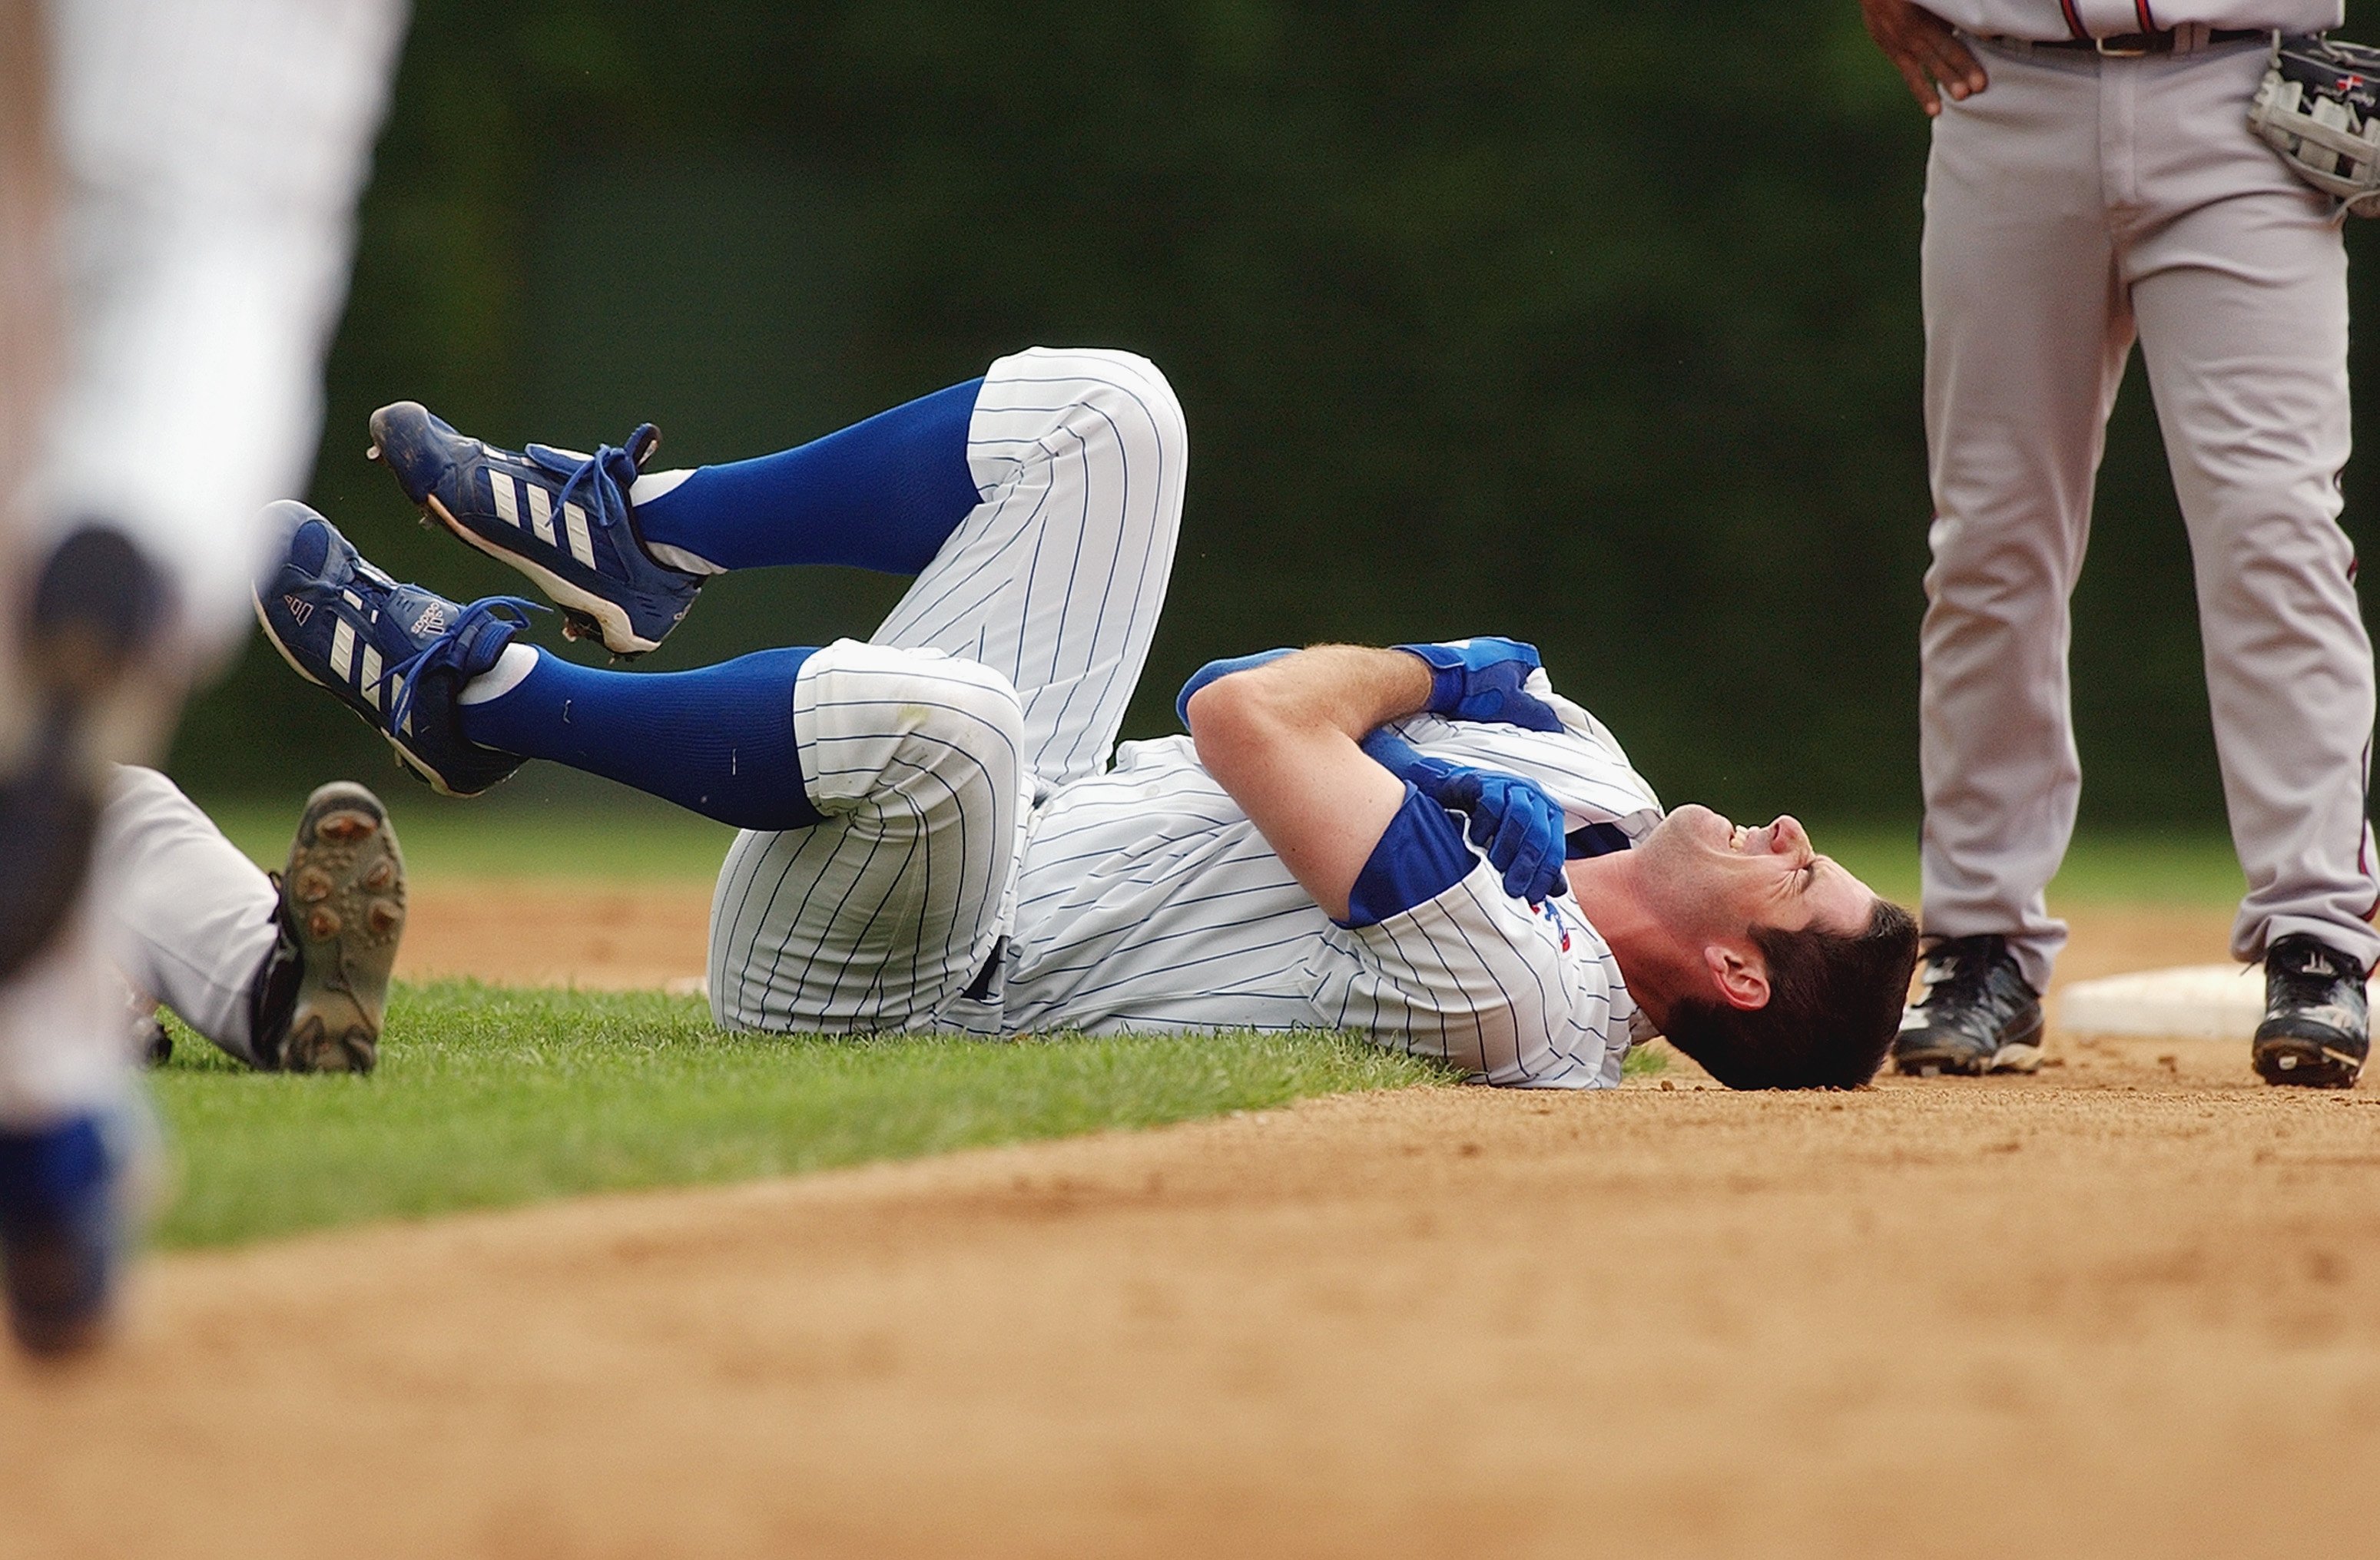 CHICAGO - JULY 11:  Starting pitcher Mark Prior #22 of the Chicago Cubs grabs his shoulder in pain after colliding with second baseman Marcus Giles #22 of the Atlanta Braves during the second inning of the game at Wrigley Field on July 11, 2003 in Chicago